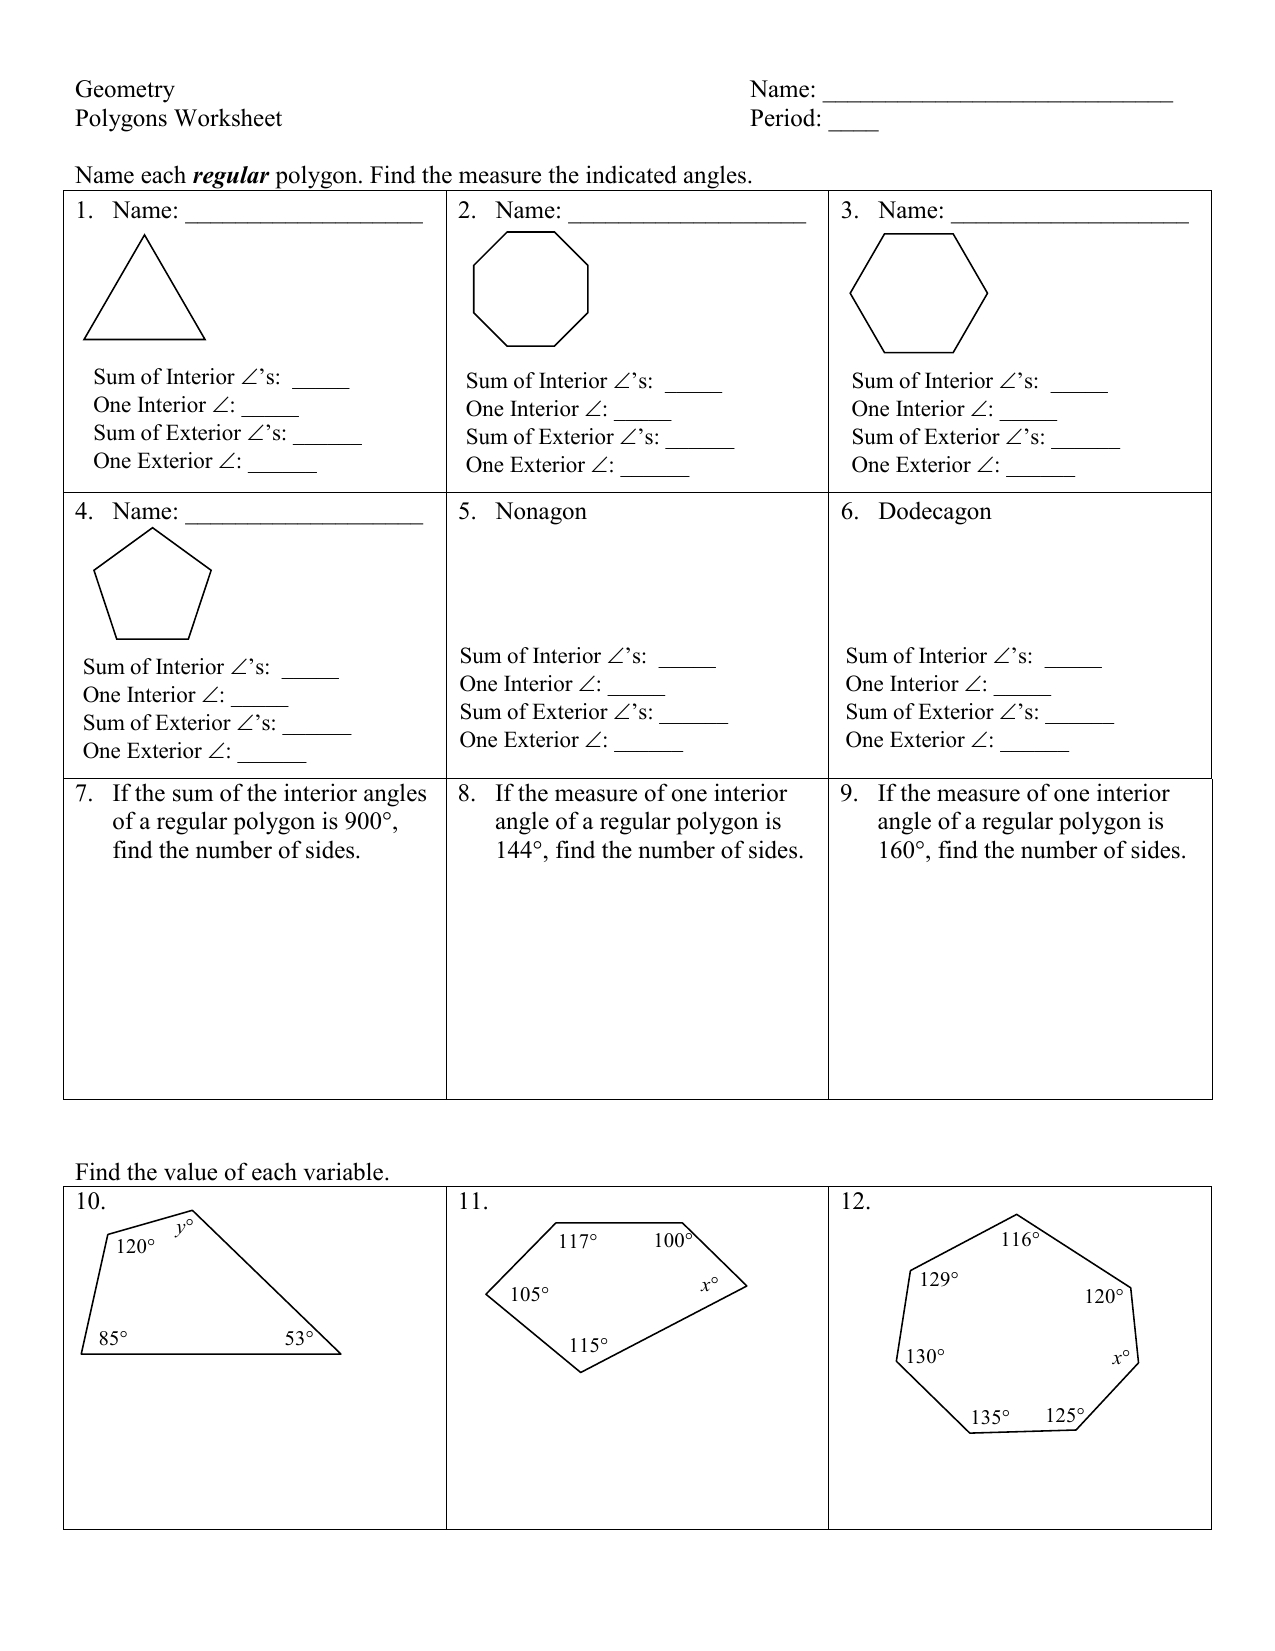 Geometry Name Polygons Worksheet Period Name Each